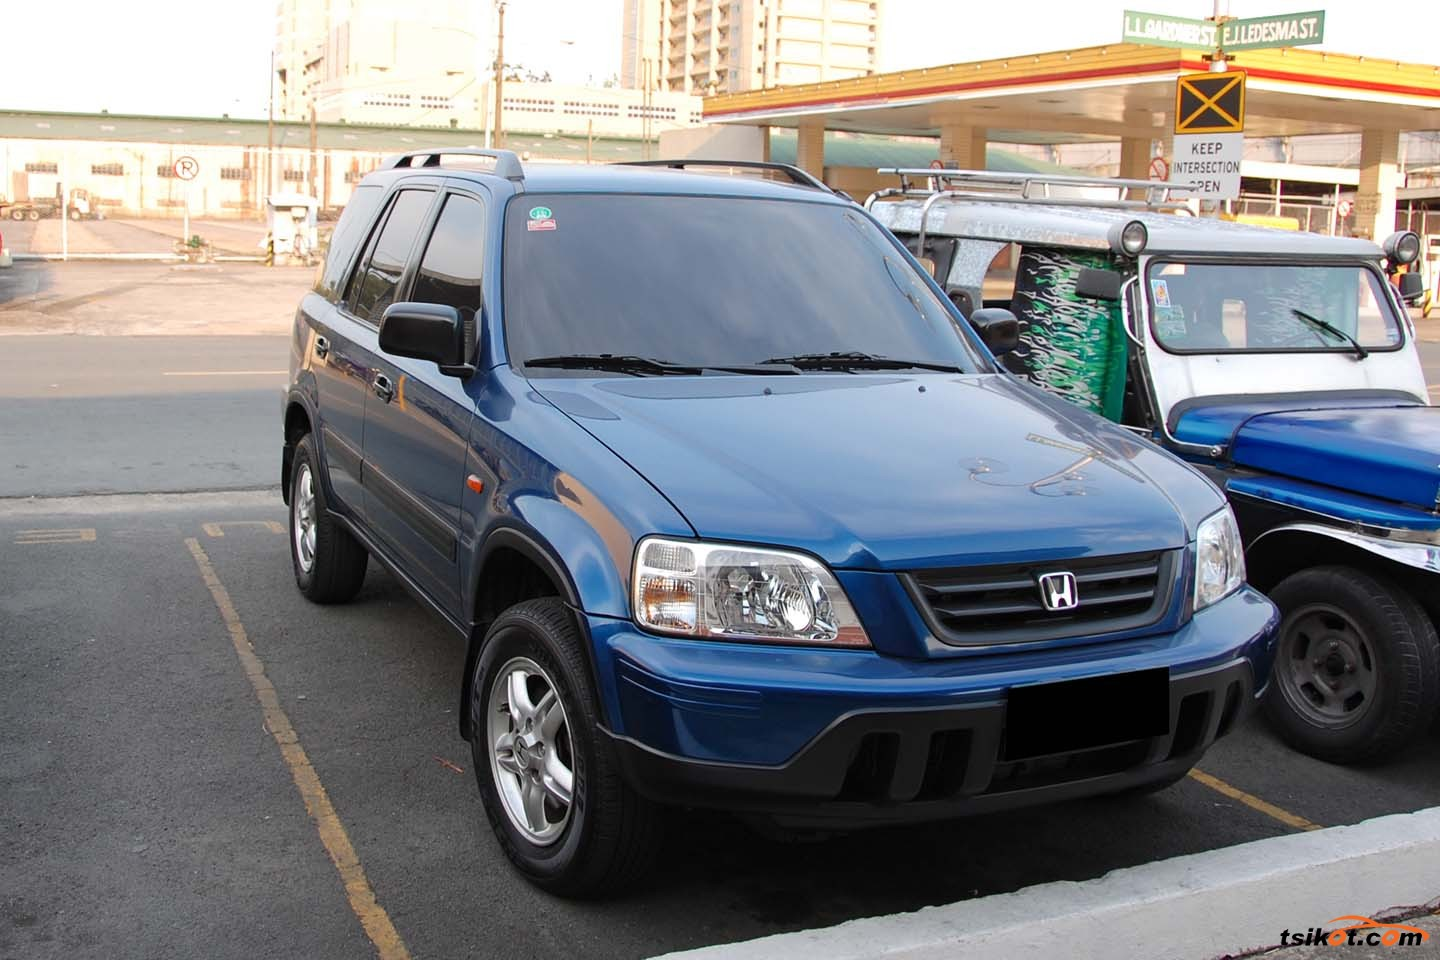 honda cr v 1999 car for sale metro manila. Black Bedroom Furniture Sets. Home Design Ideas